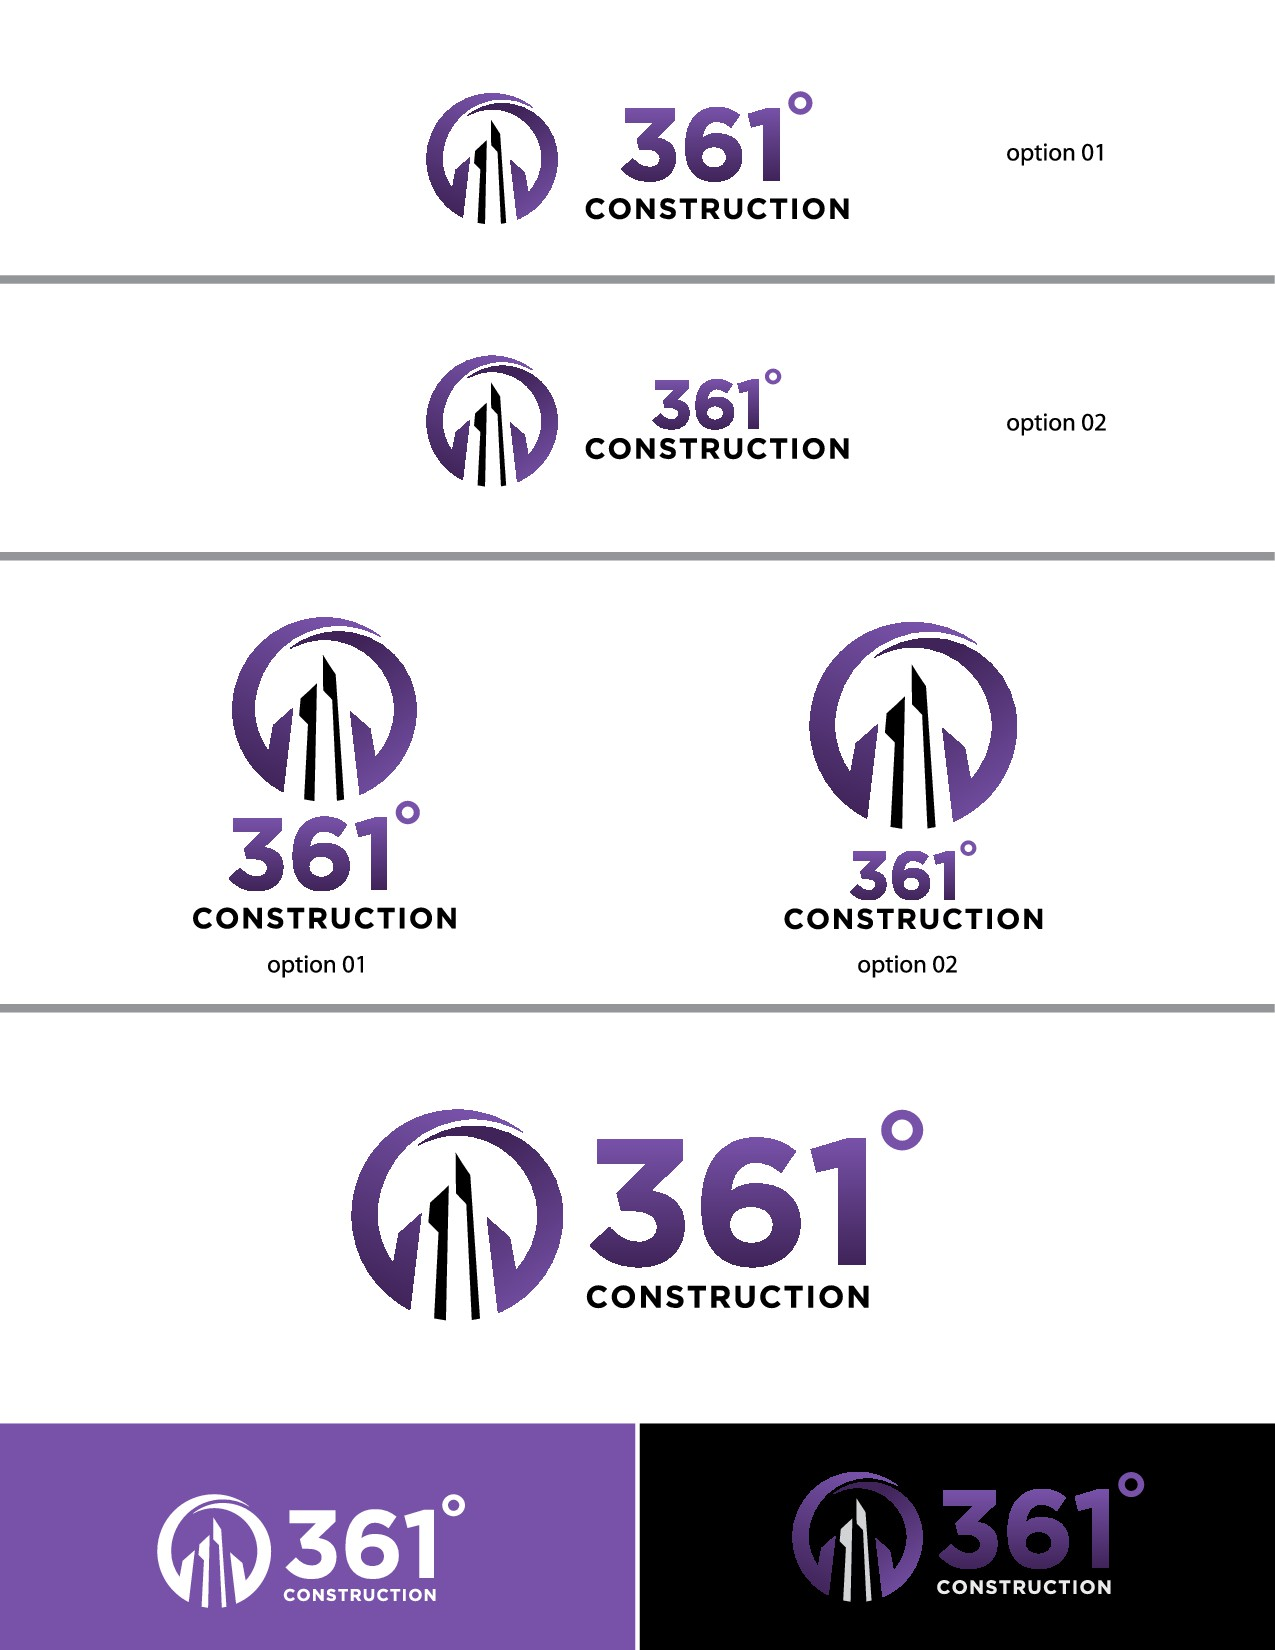 Powerful logo with modern touches